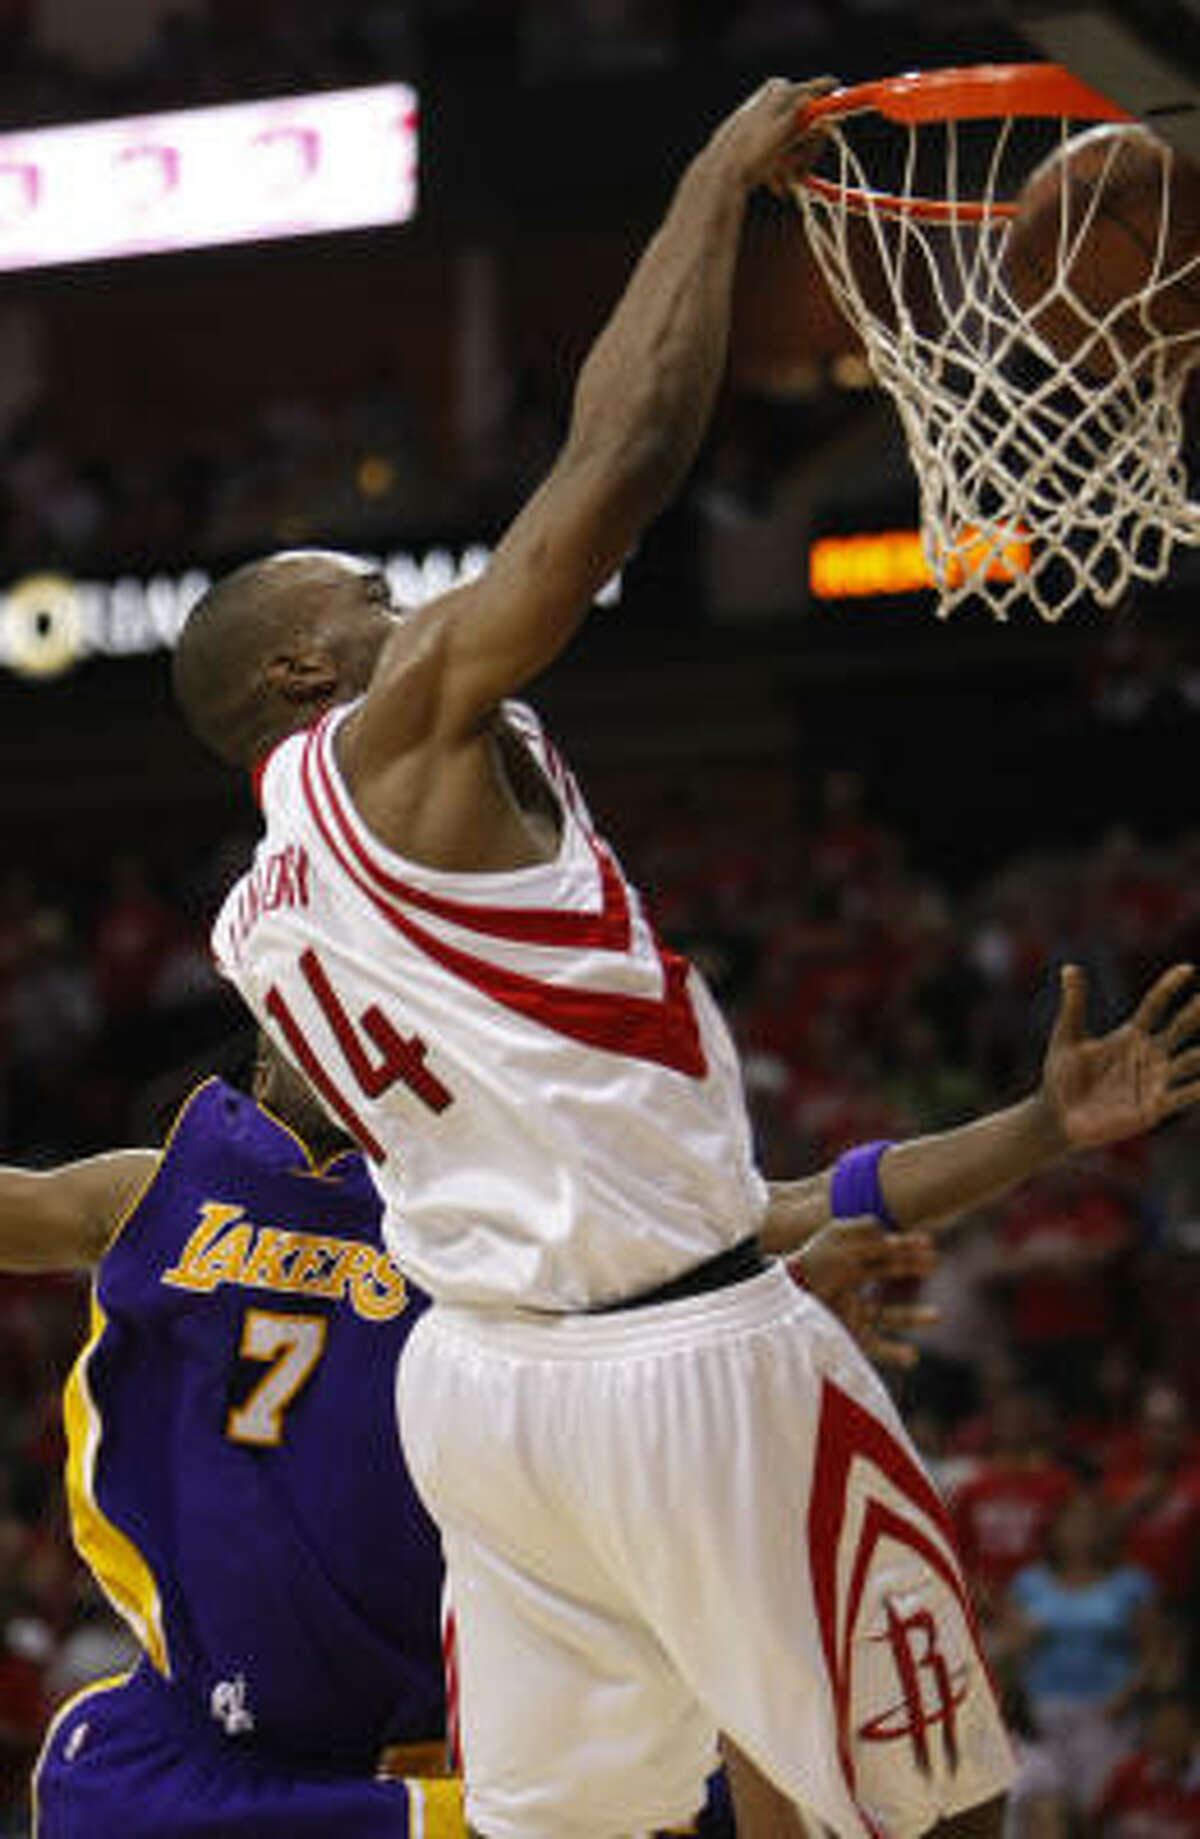 Carl Landry (14) drops a dunk on Lakers forward Lamar Odom (7) during the fourth quarter.